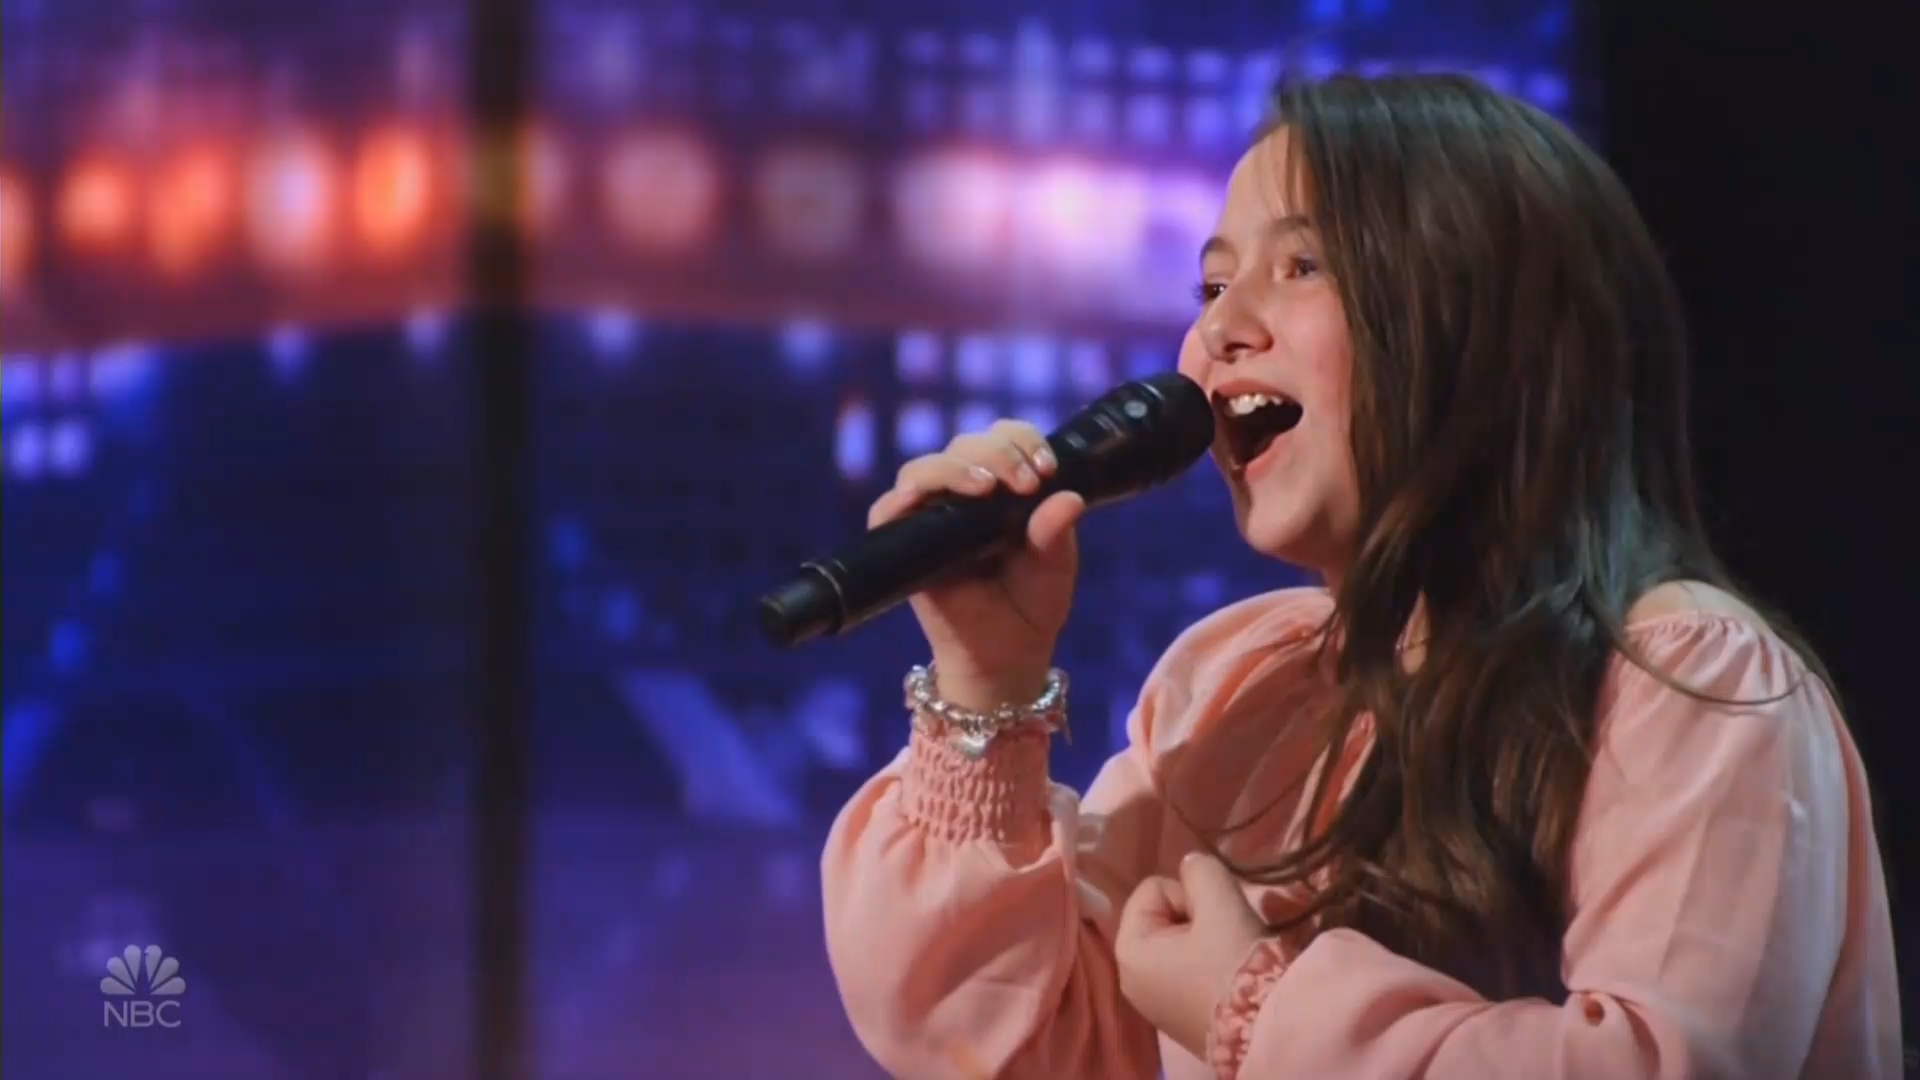 10-year-old AGT contestant shocks Sofia Vergara with a voice like Lady Gaga